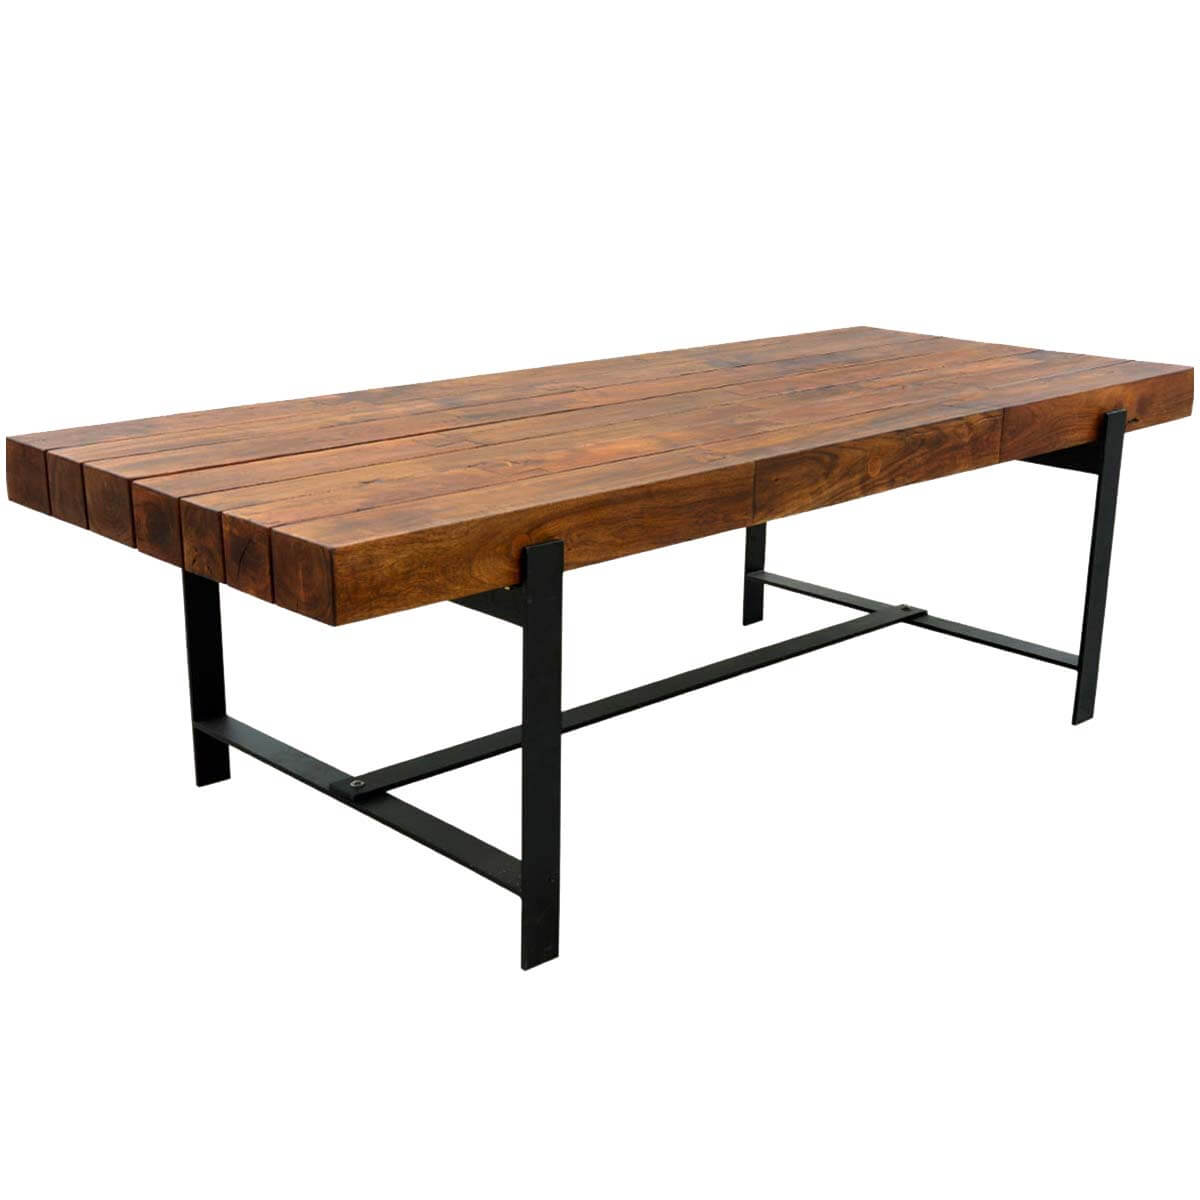 Industrial Iron amp Acacia Wood 94 Large Rustic Dining Table